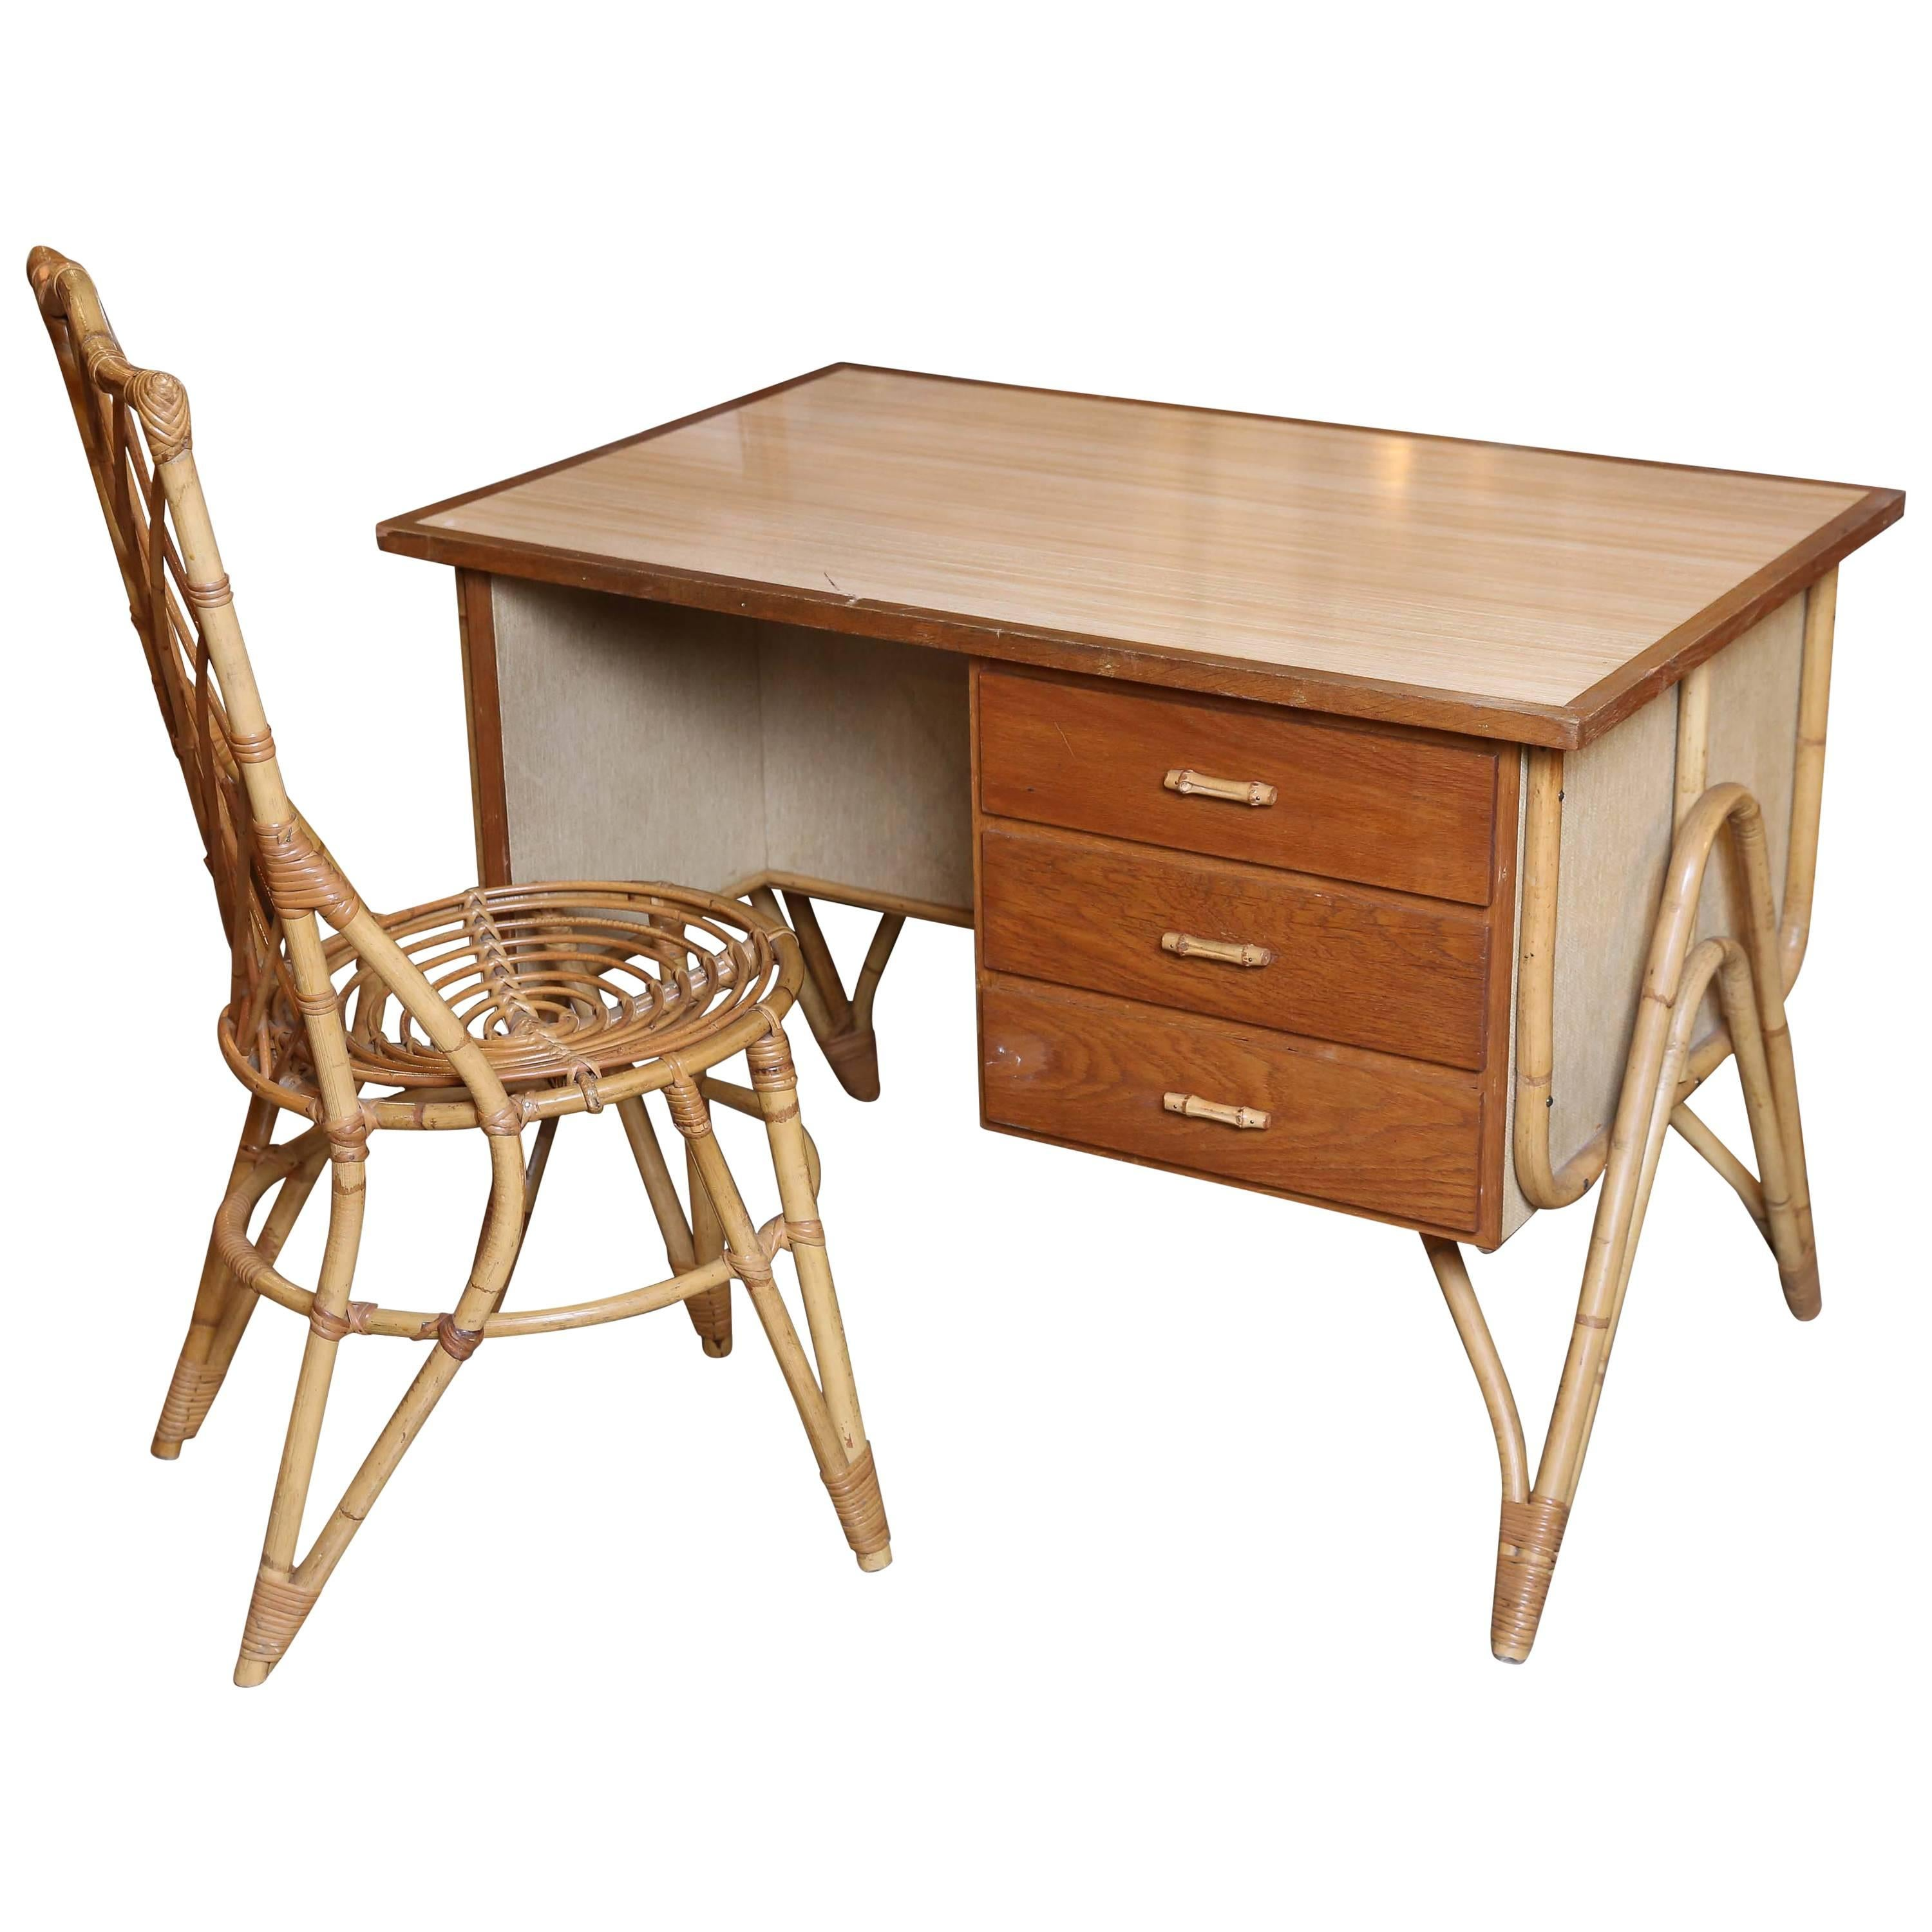 Bamboo Desk and Chair